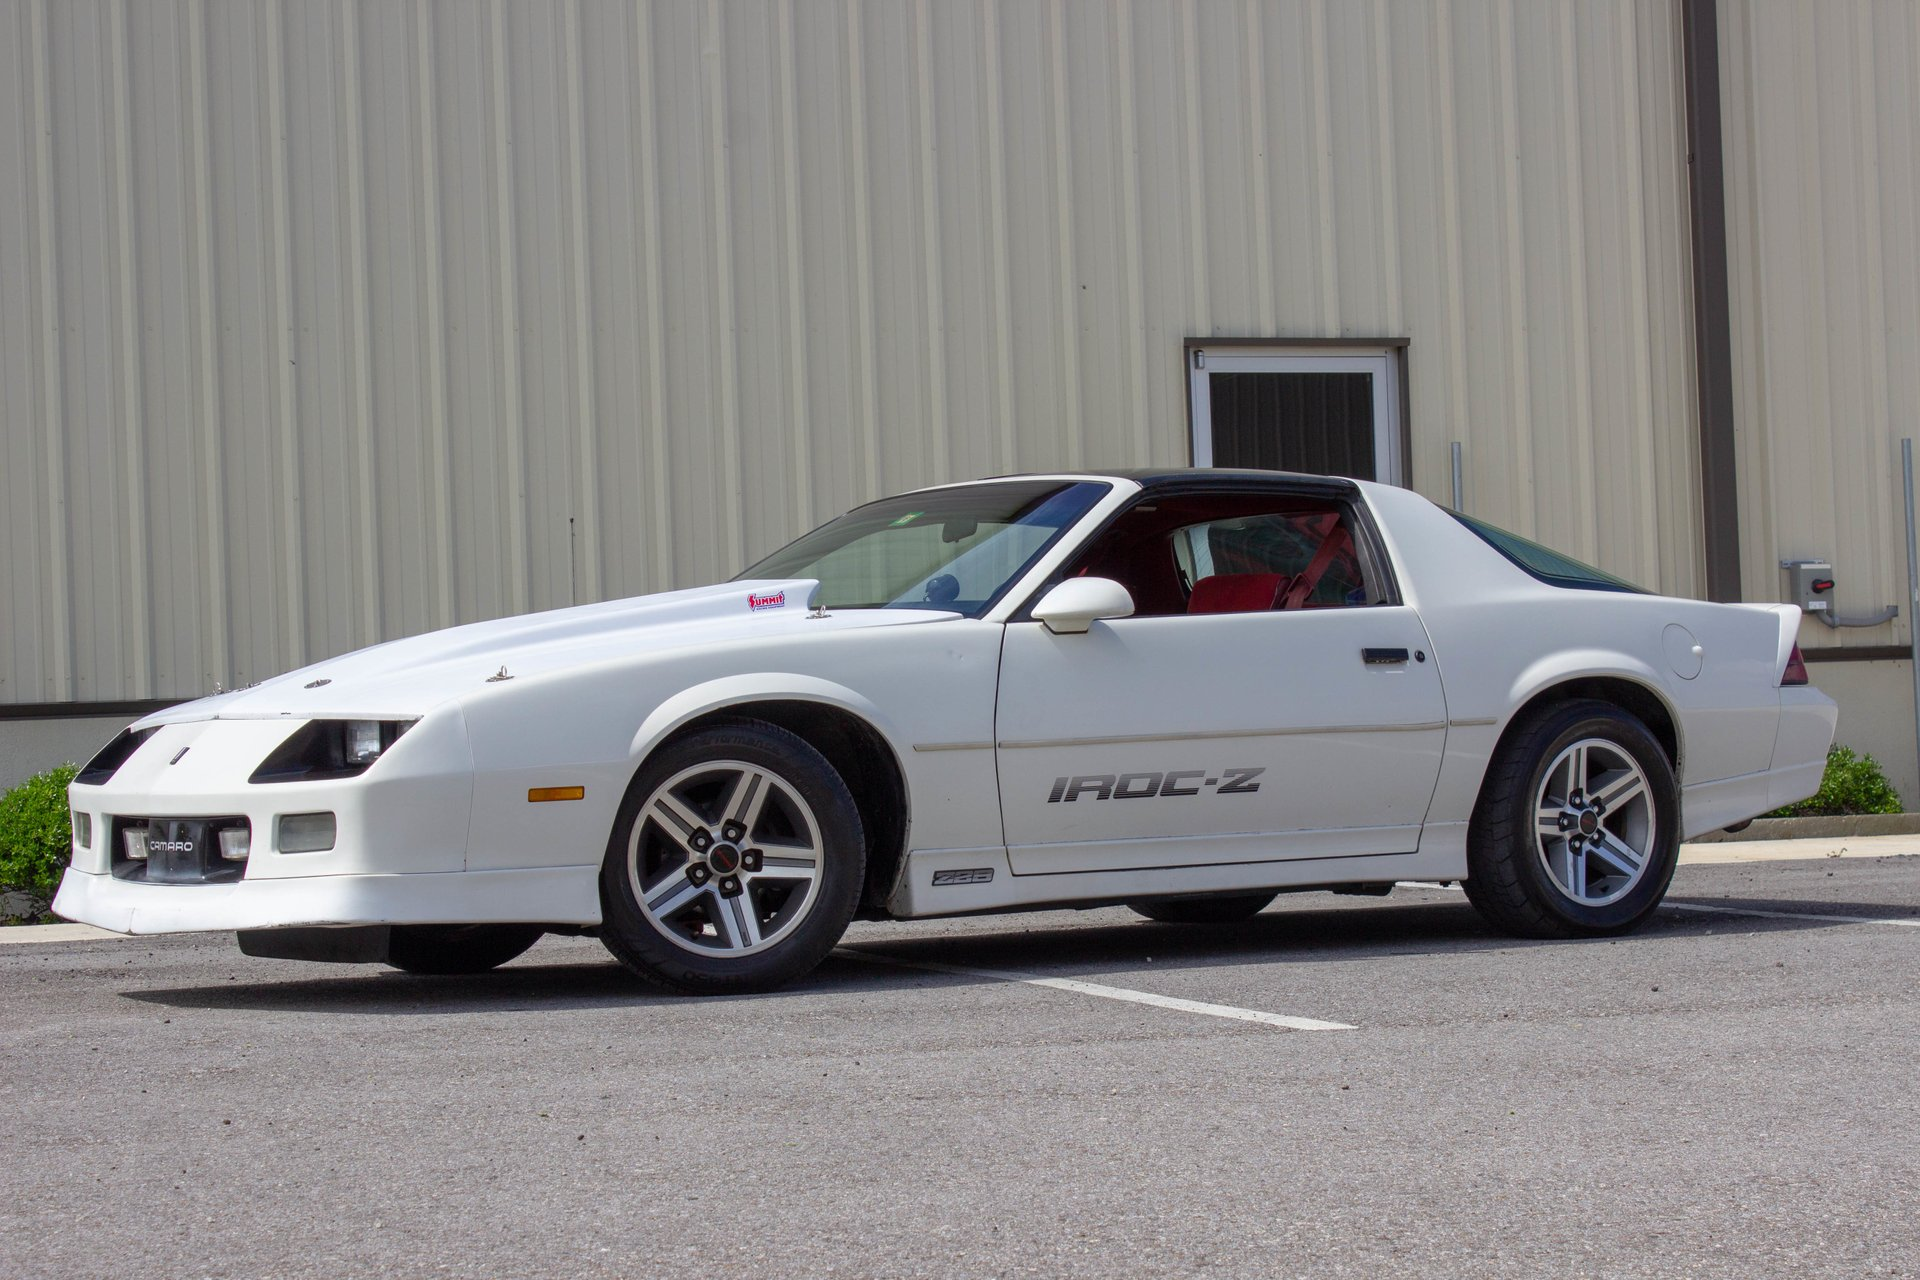 1986 Chevrolet Camaro | Classic Cars & Used Cars For Sale in